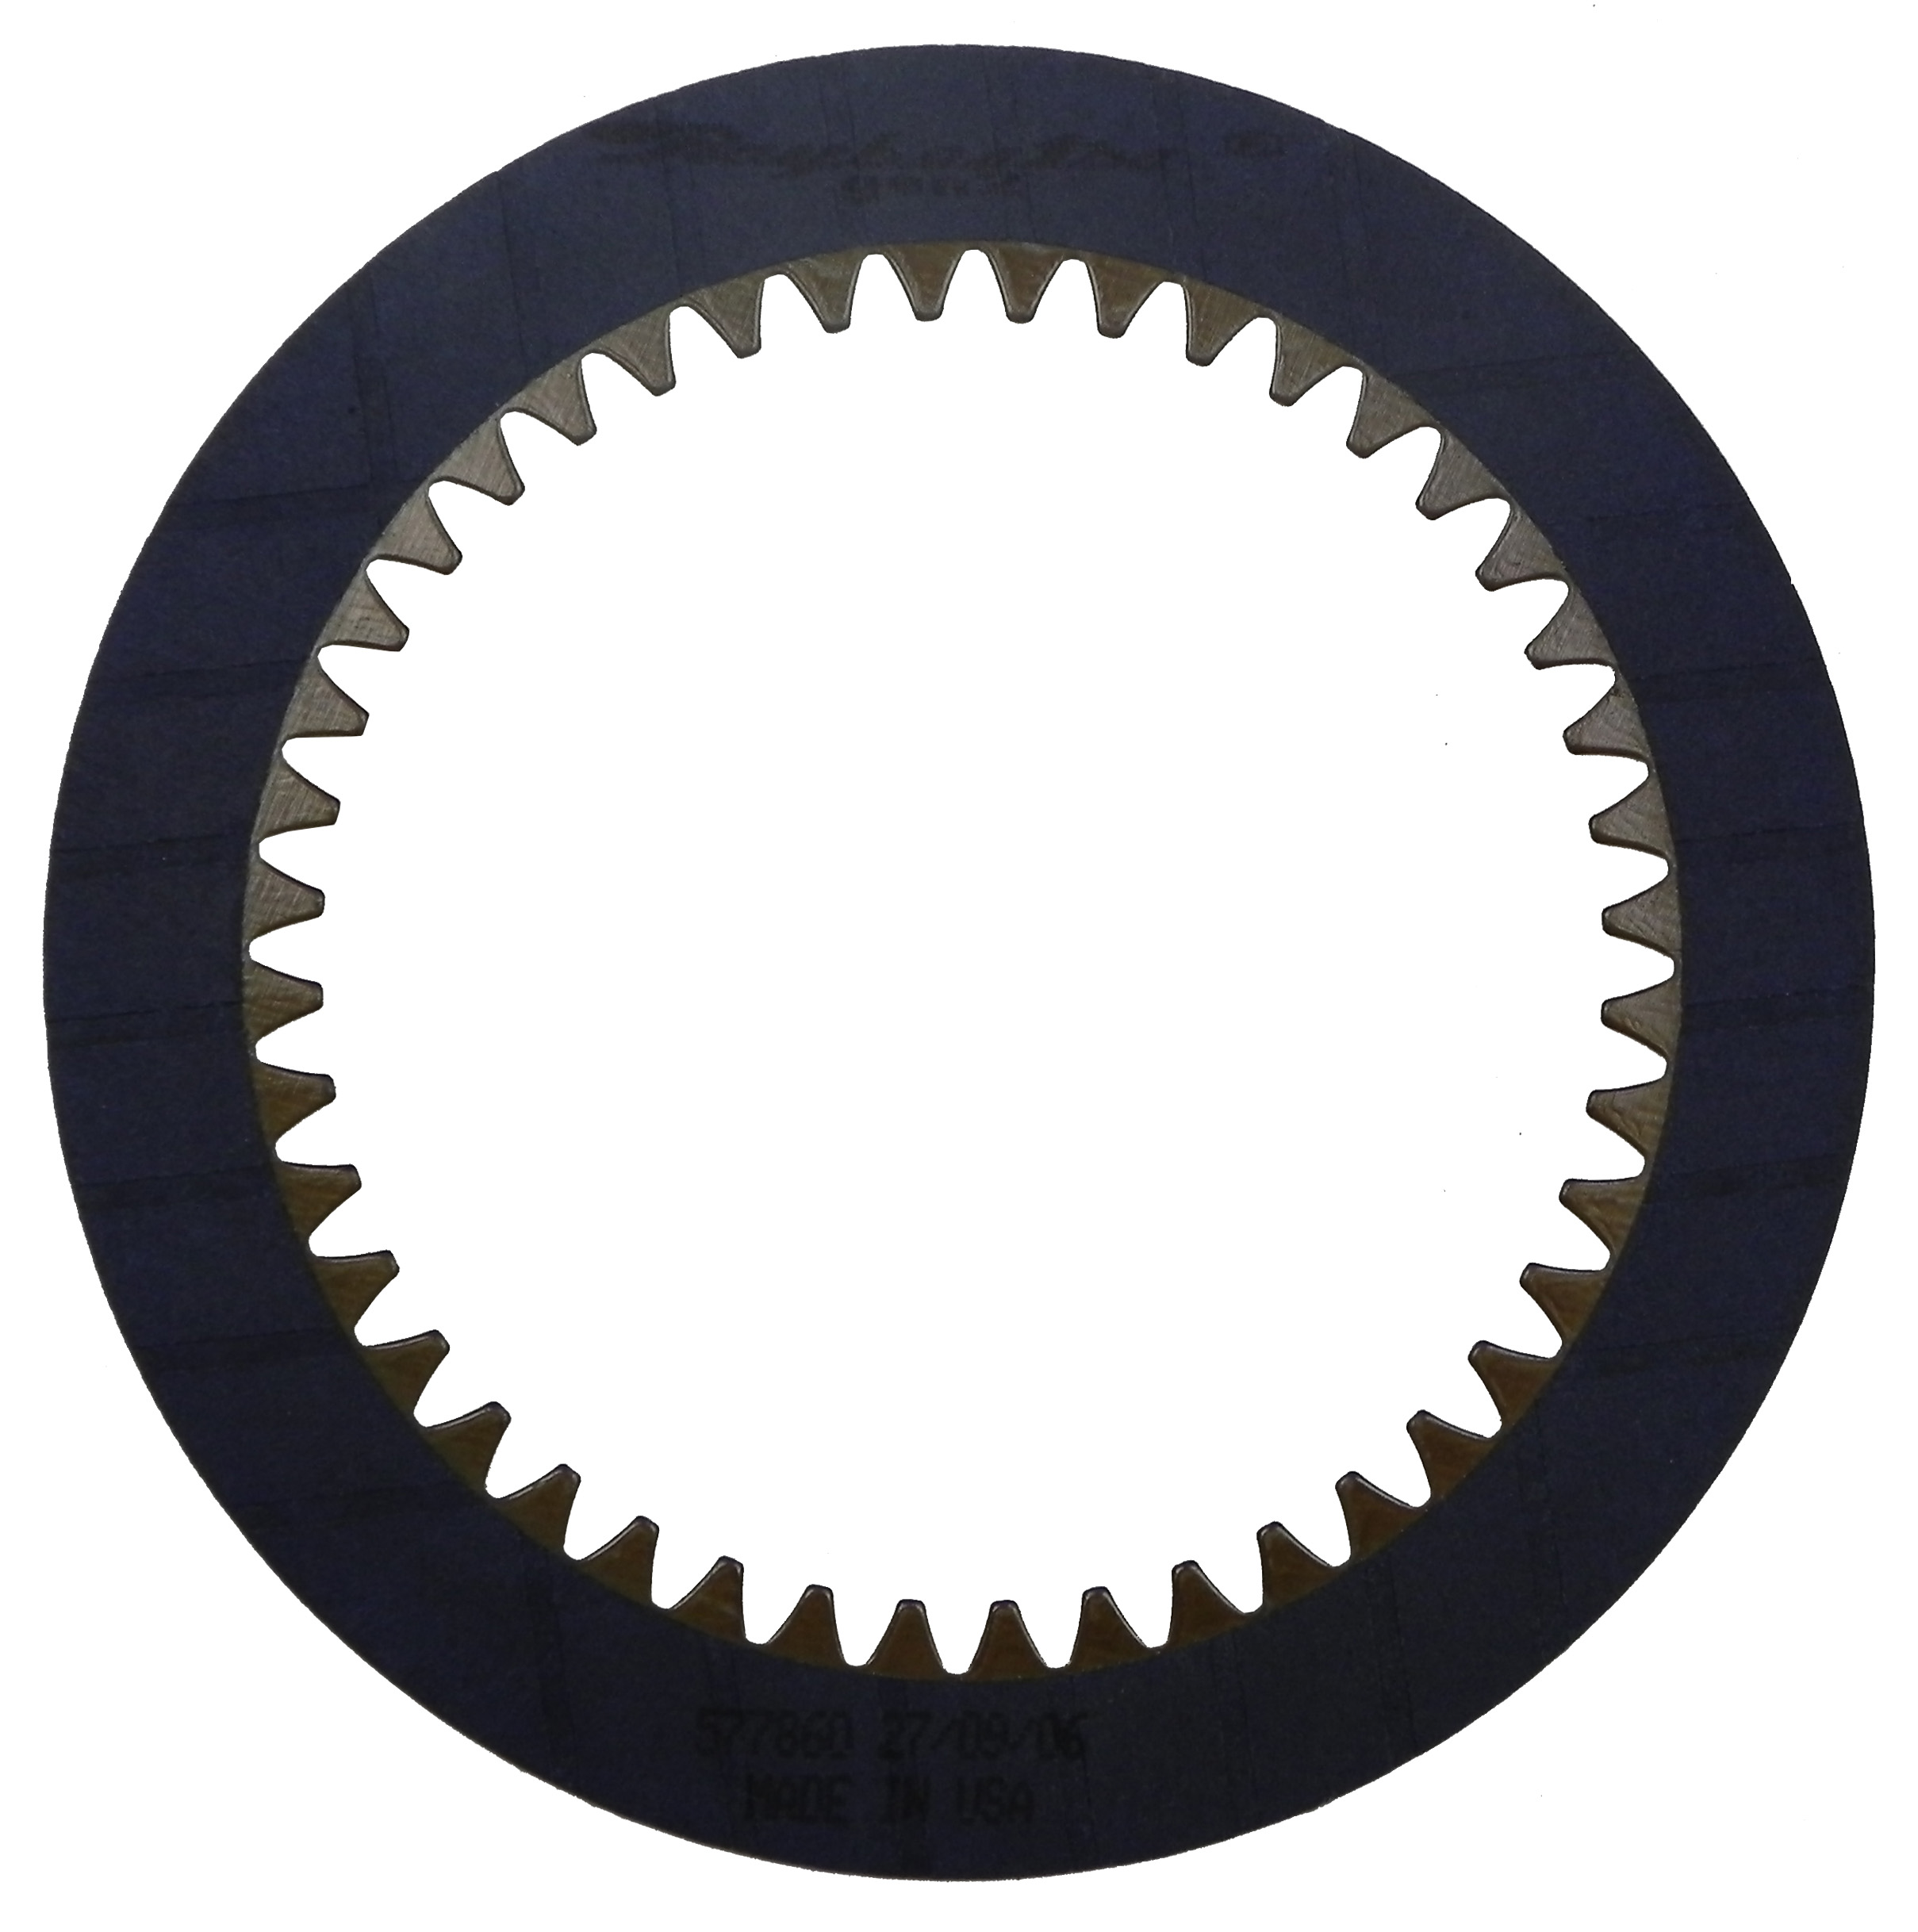 R577860 | 1990-1997 Friction Clutch Plate GEN 2, Blue Plate Special Low Hold, 1st, 2nd, 3rd, 4th GEN 2 Race Product